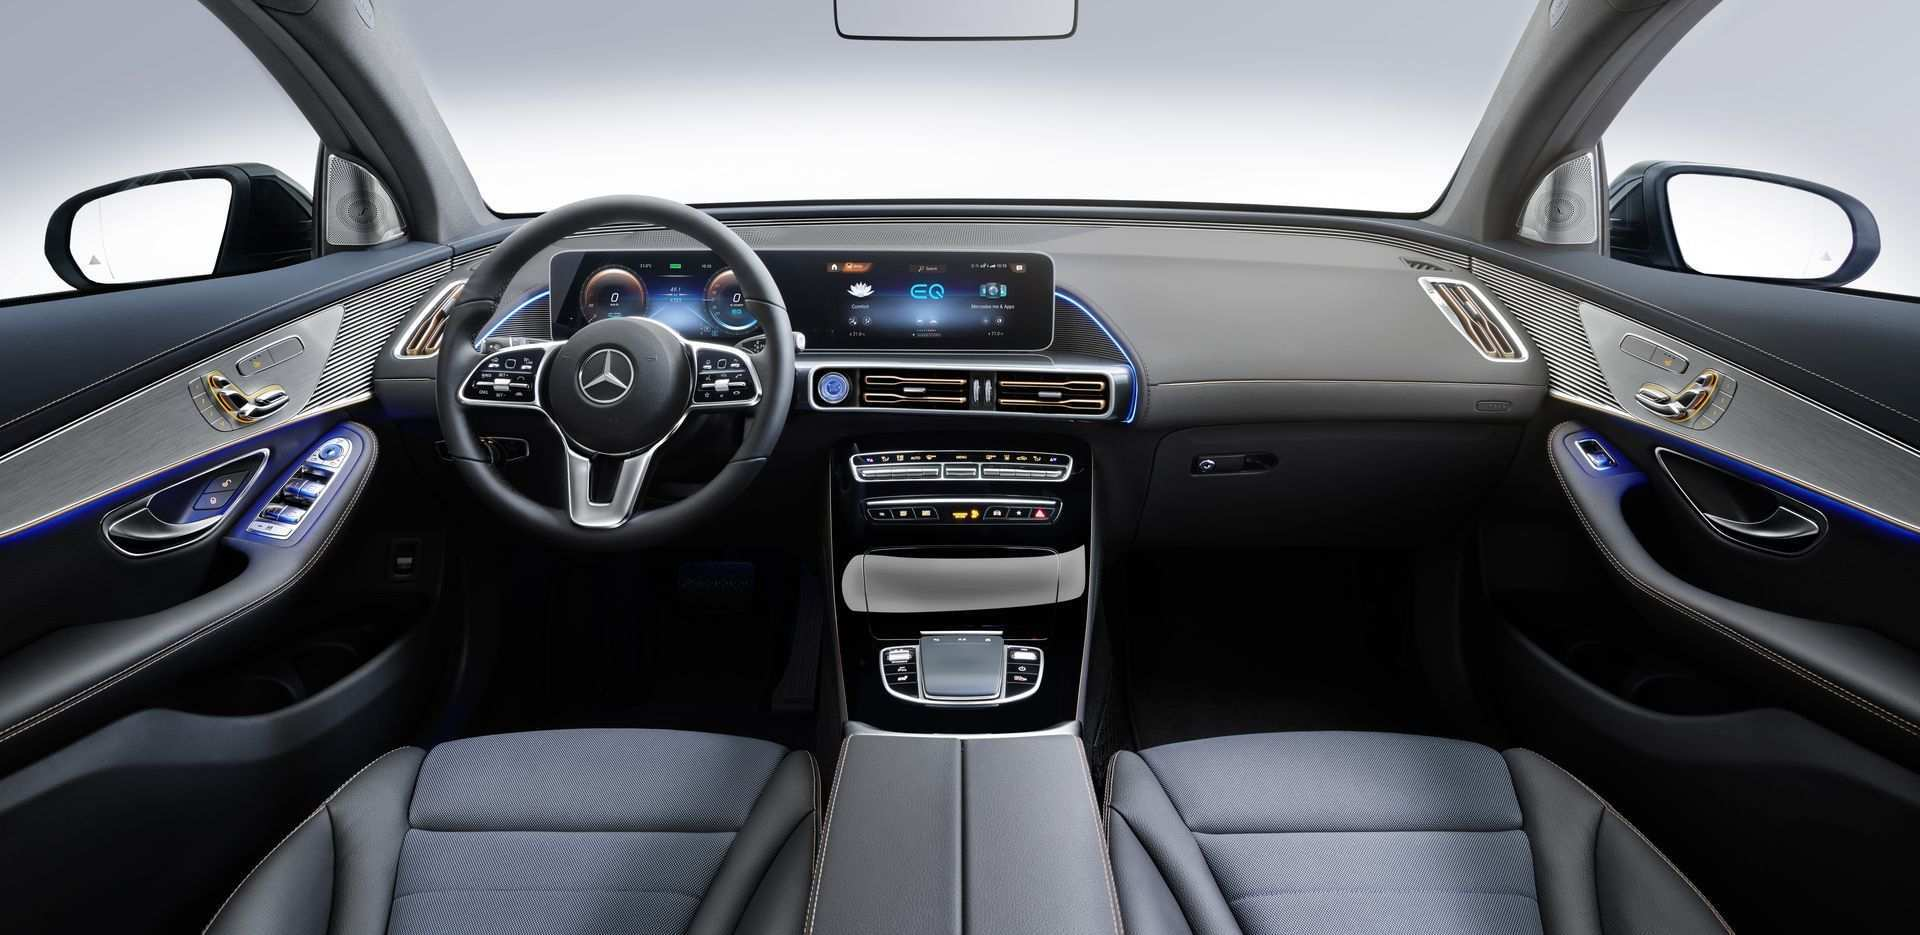 16 All New Volkswagen New Conceptljahr 2020 Price and Review by Volkswagen New Conceptljahr 2020